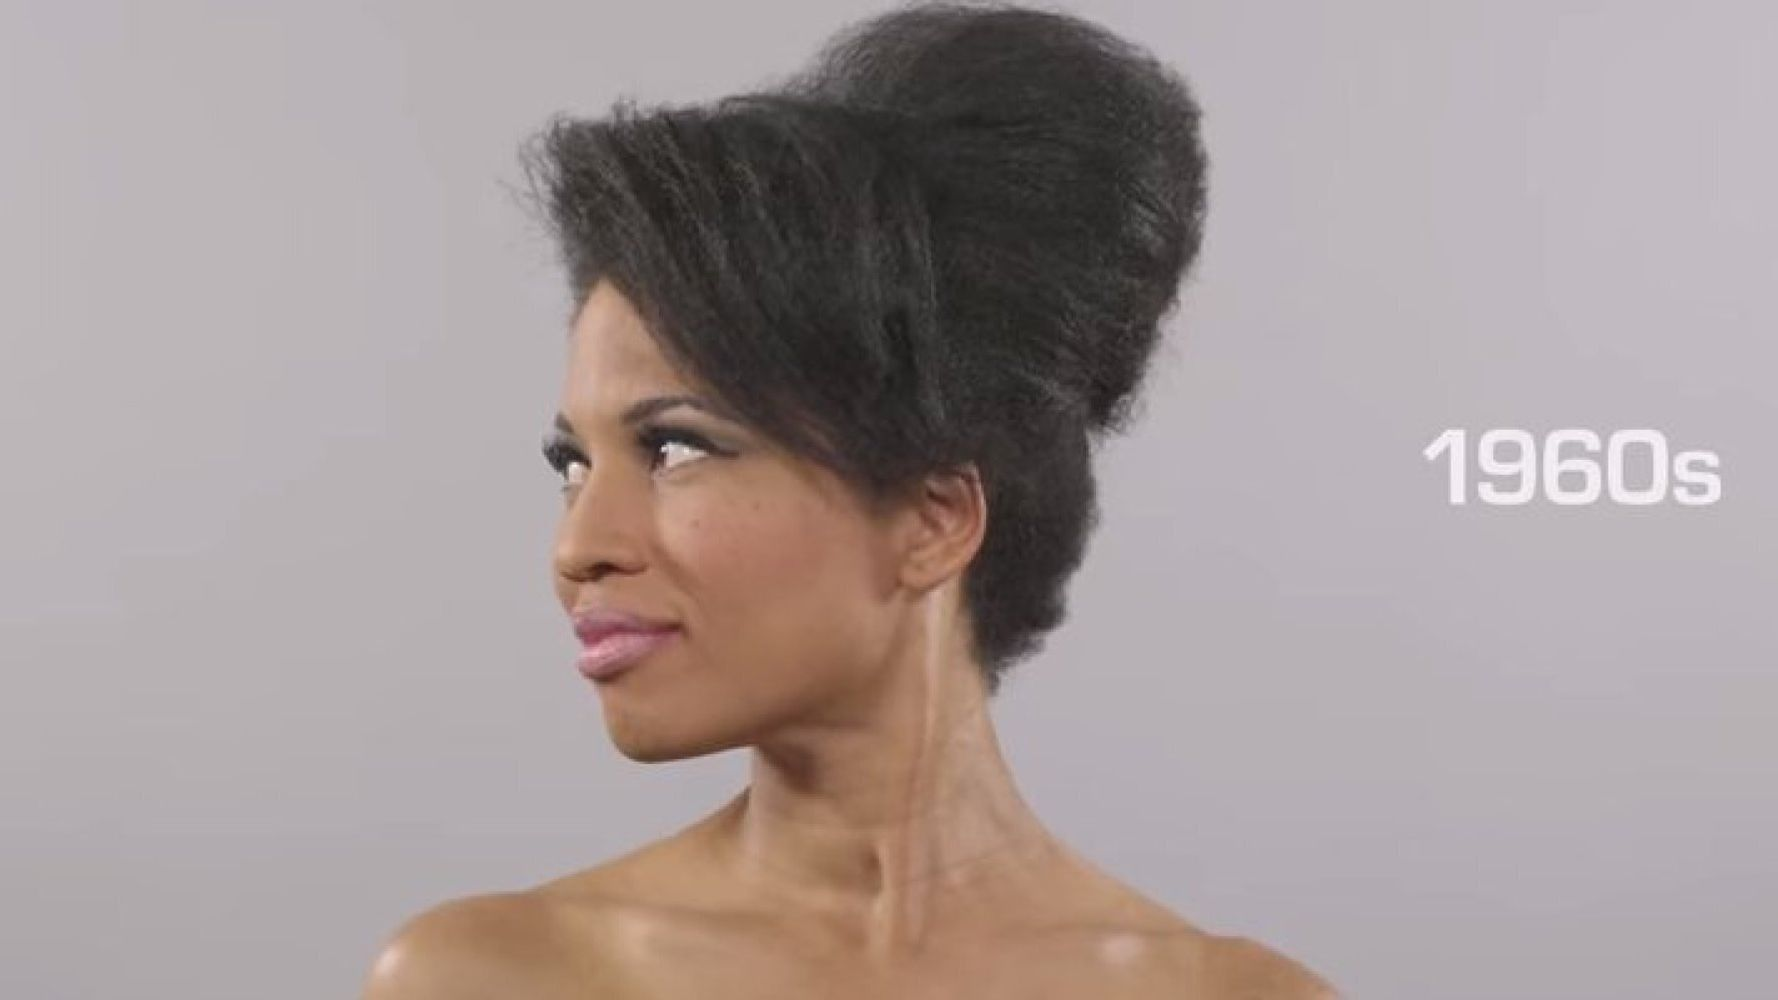 100 Years Of Beauty Time-Lapse Video Released With African-American Model, Marshay Mitchell